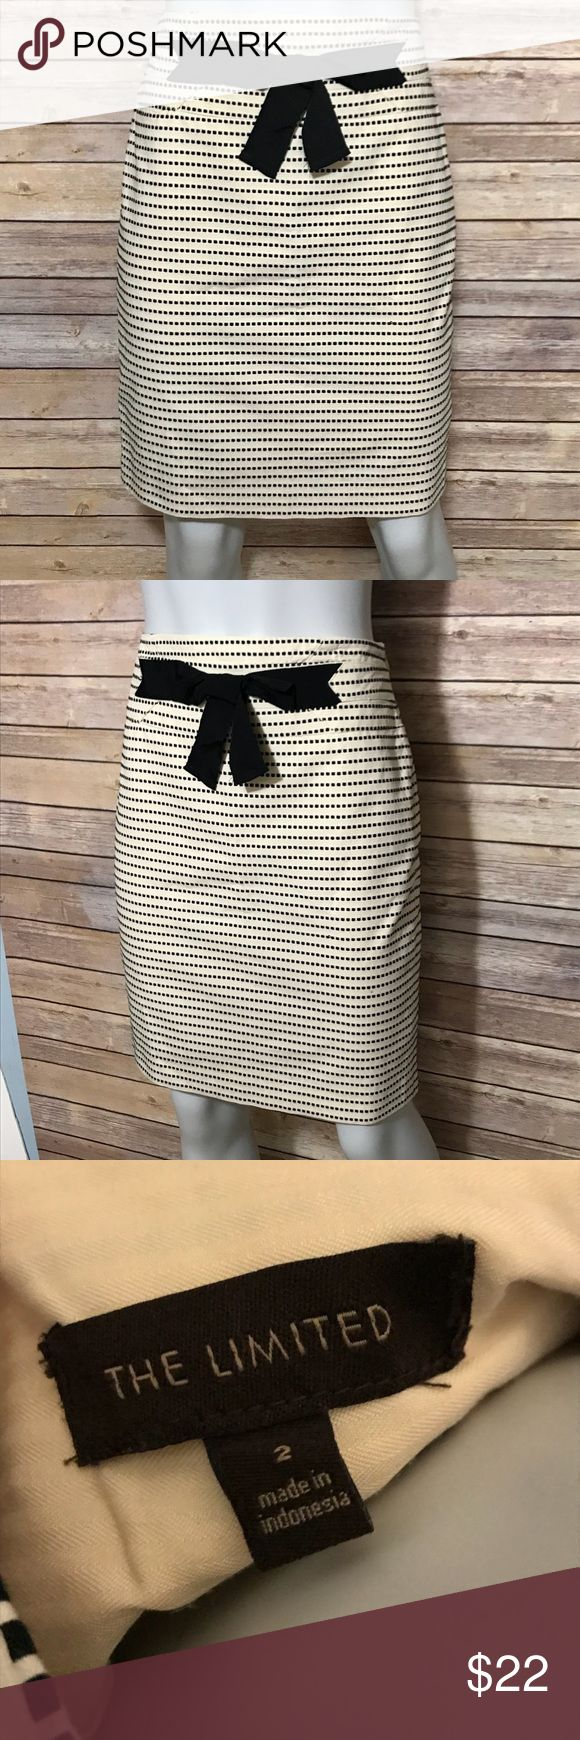 {the limited} cream and black striped pencil skirt Cream colored skirt with dotted horizontal stripe pattern. Bow detail on front at waist. Zips up the side. Pretty, lined skirt is neutral colored and would go well with many tops. The Limited Skirts Pencil